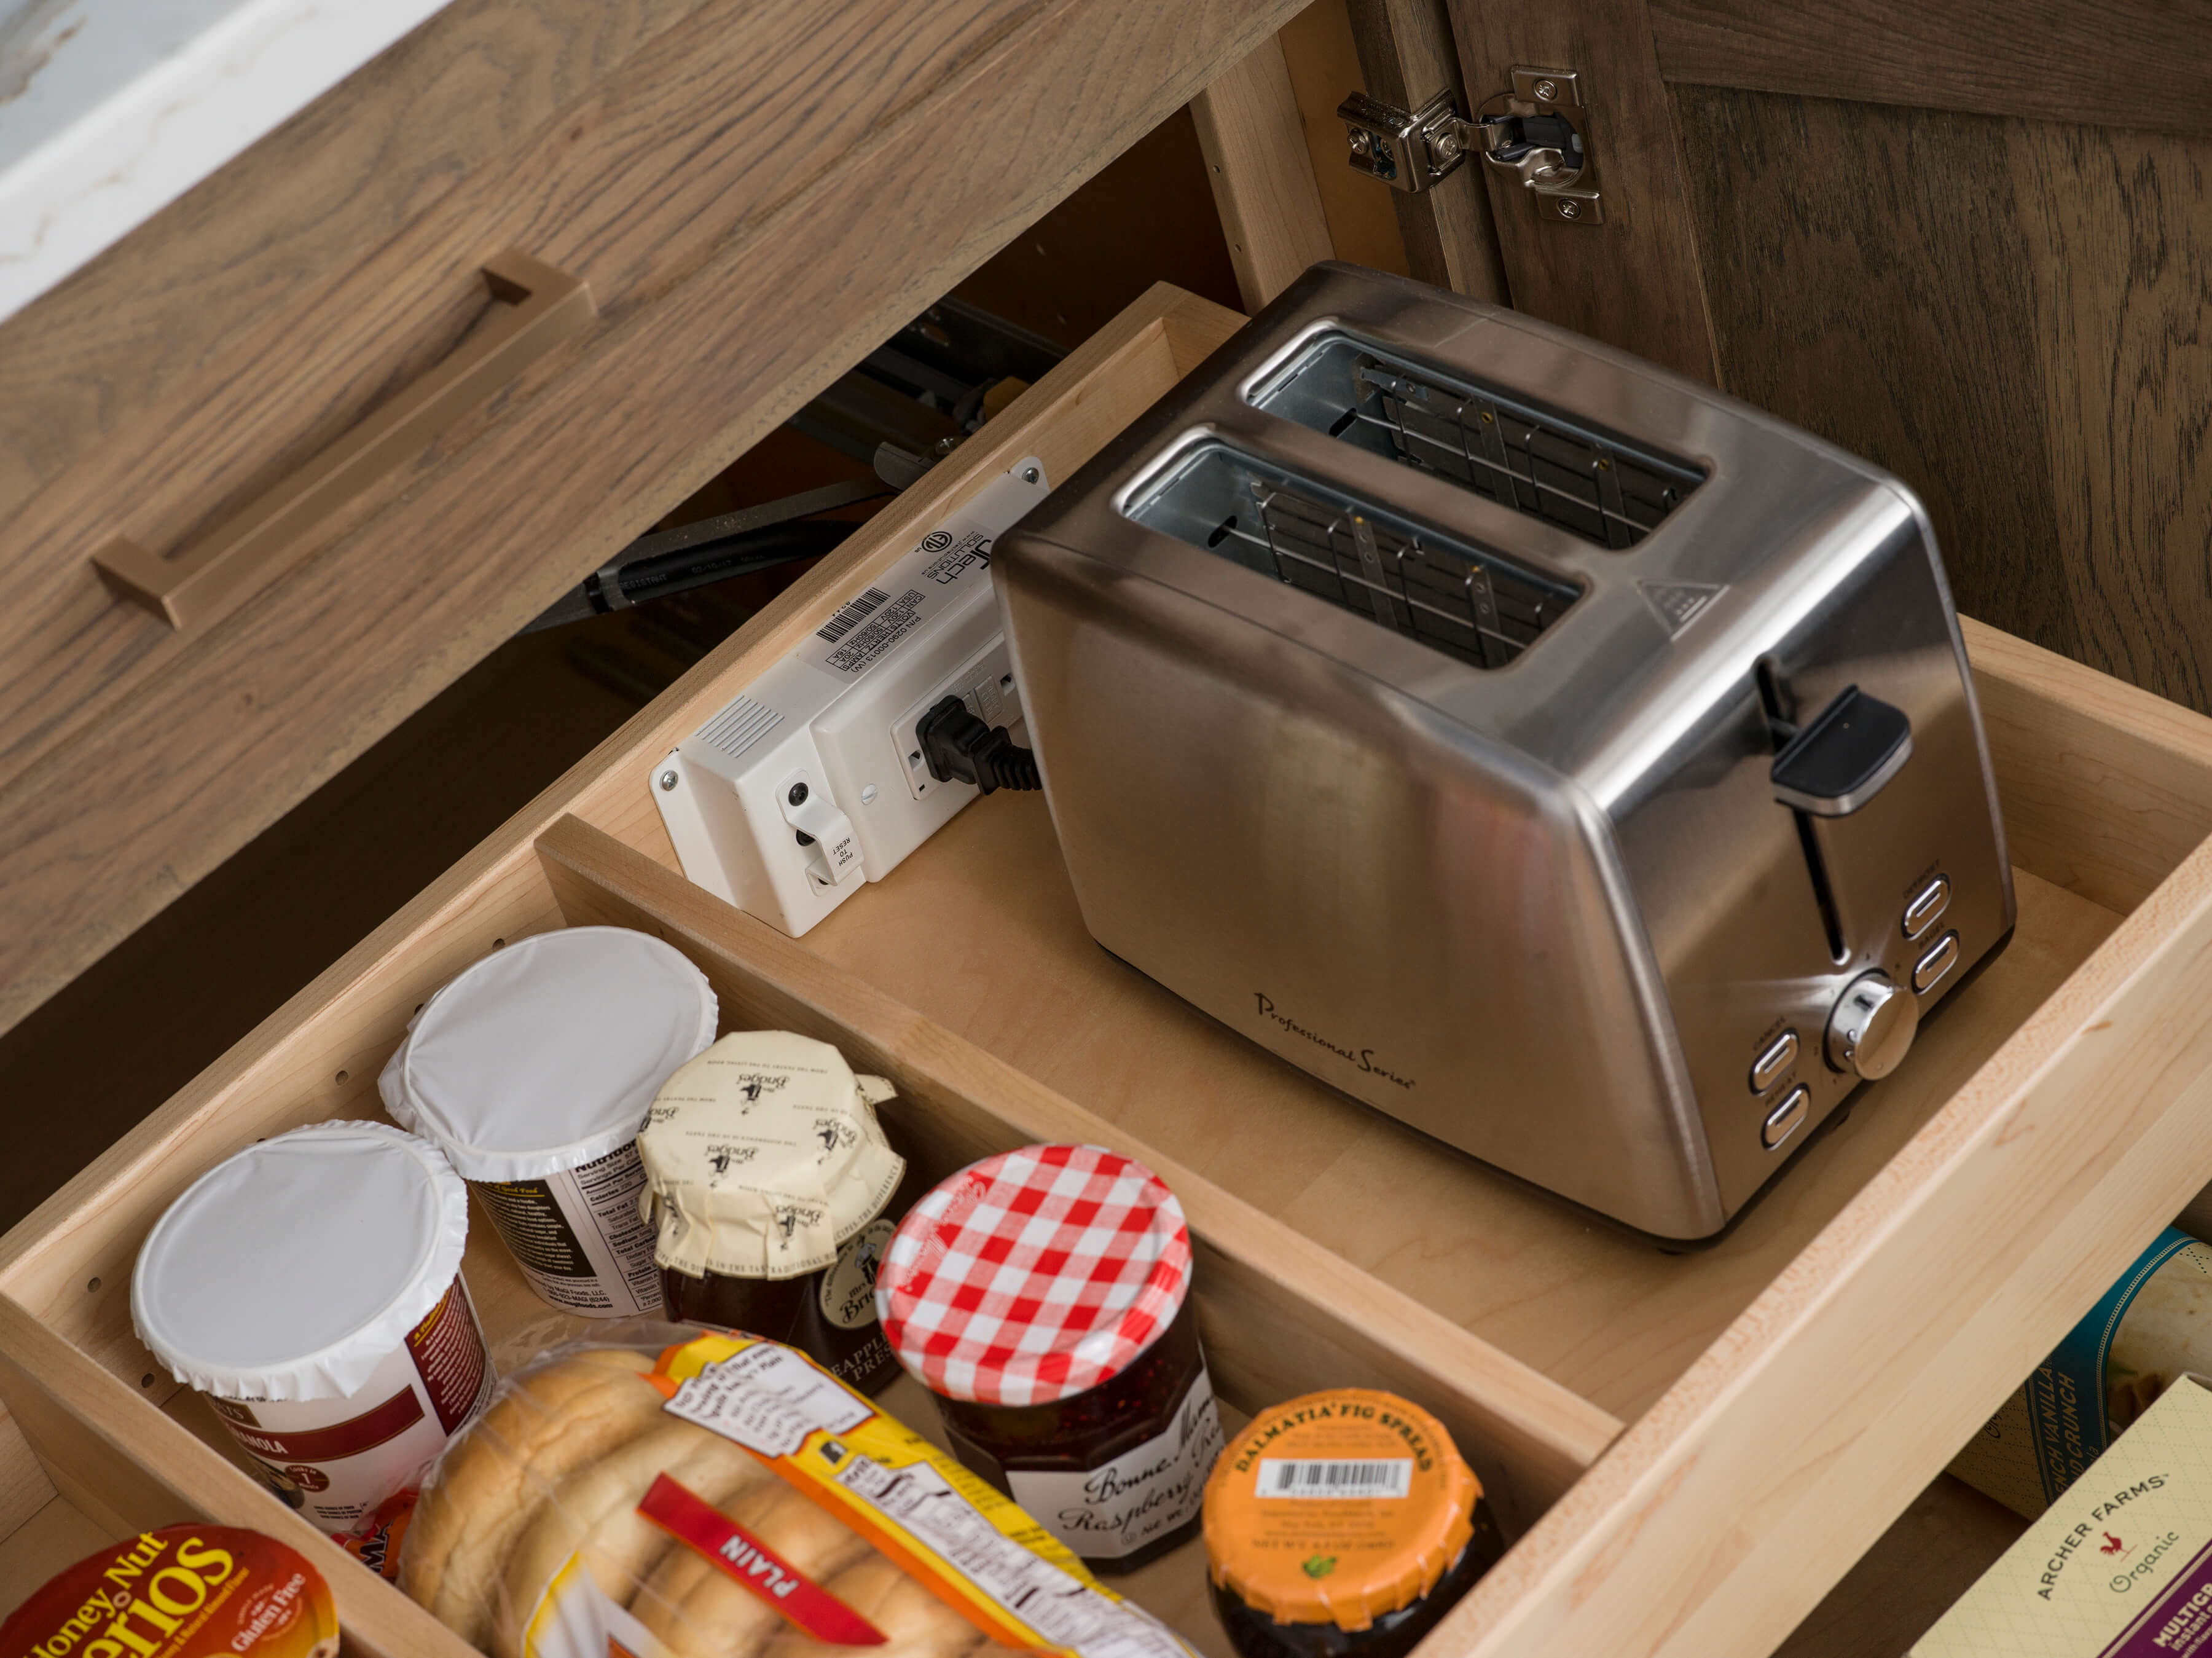 Roll-out shelves within a cabinet can be outfitted with a Dura Supreme power station or charging station for a variety of uses.